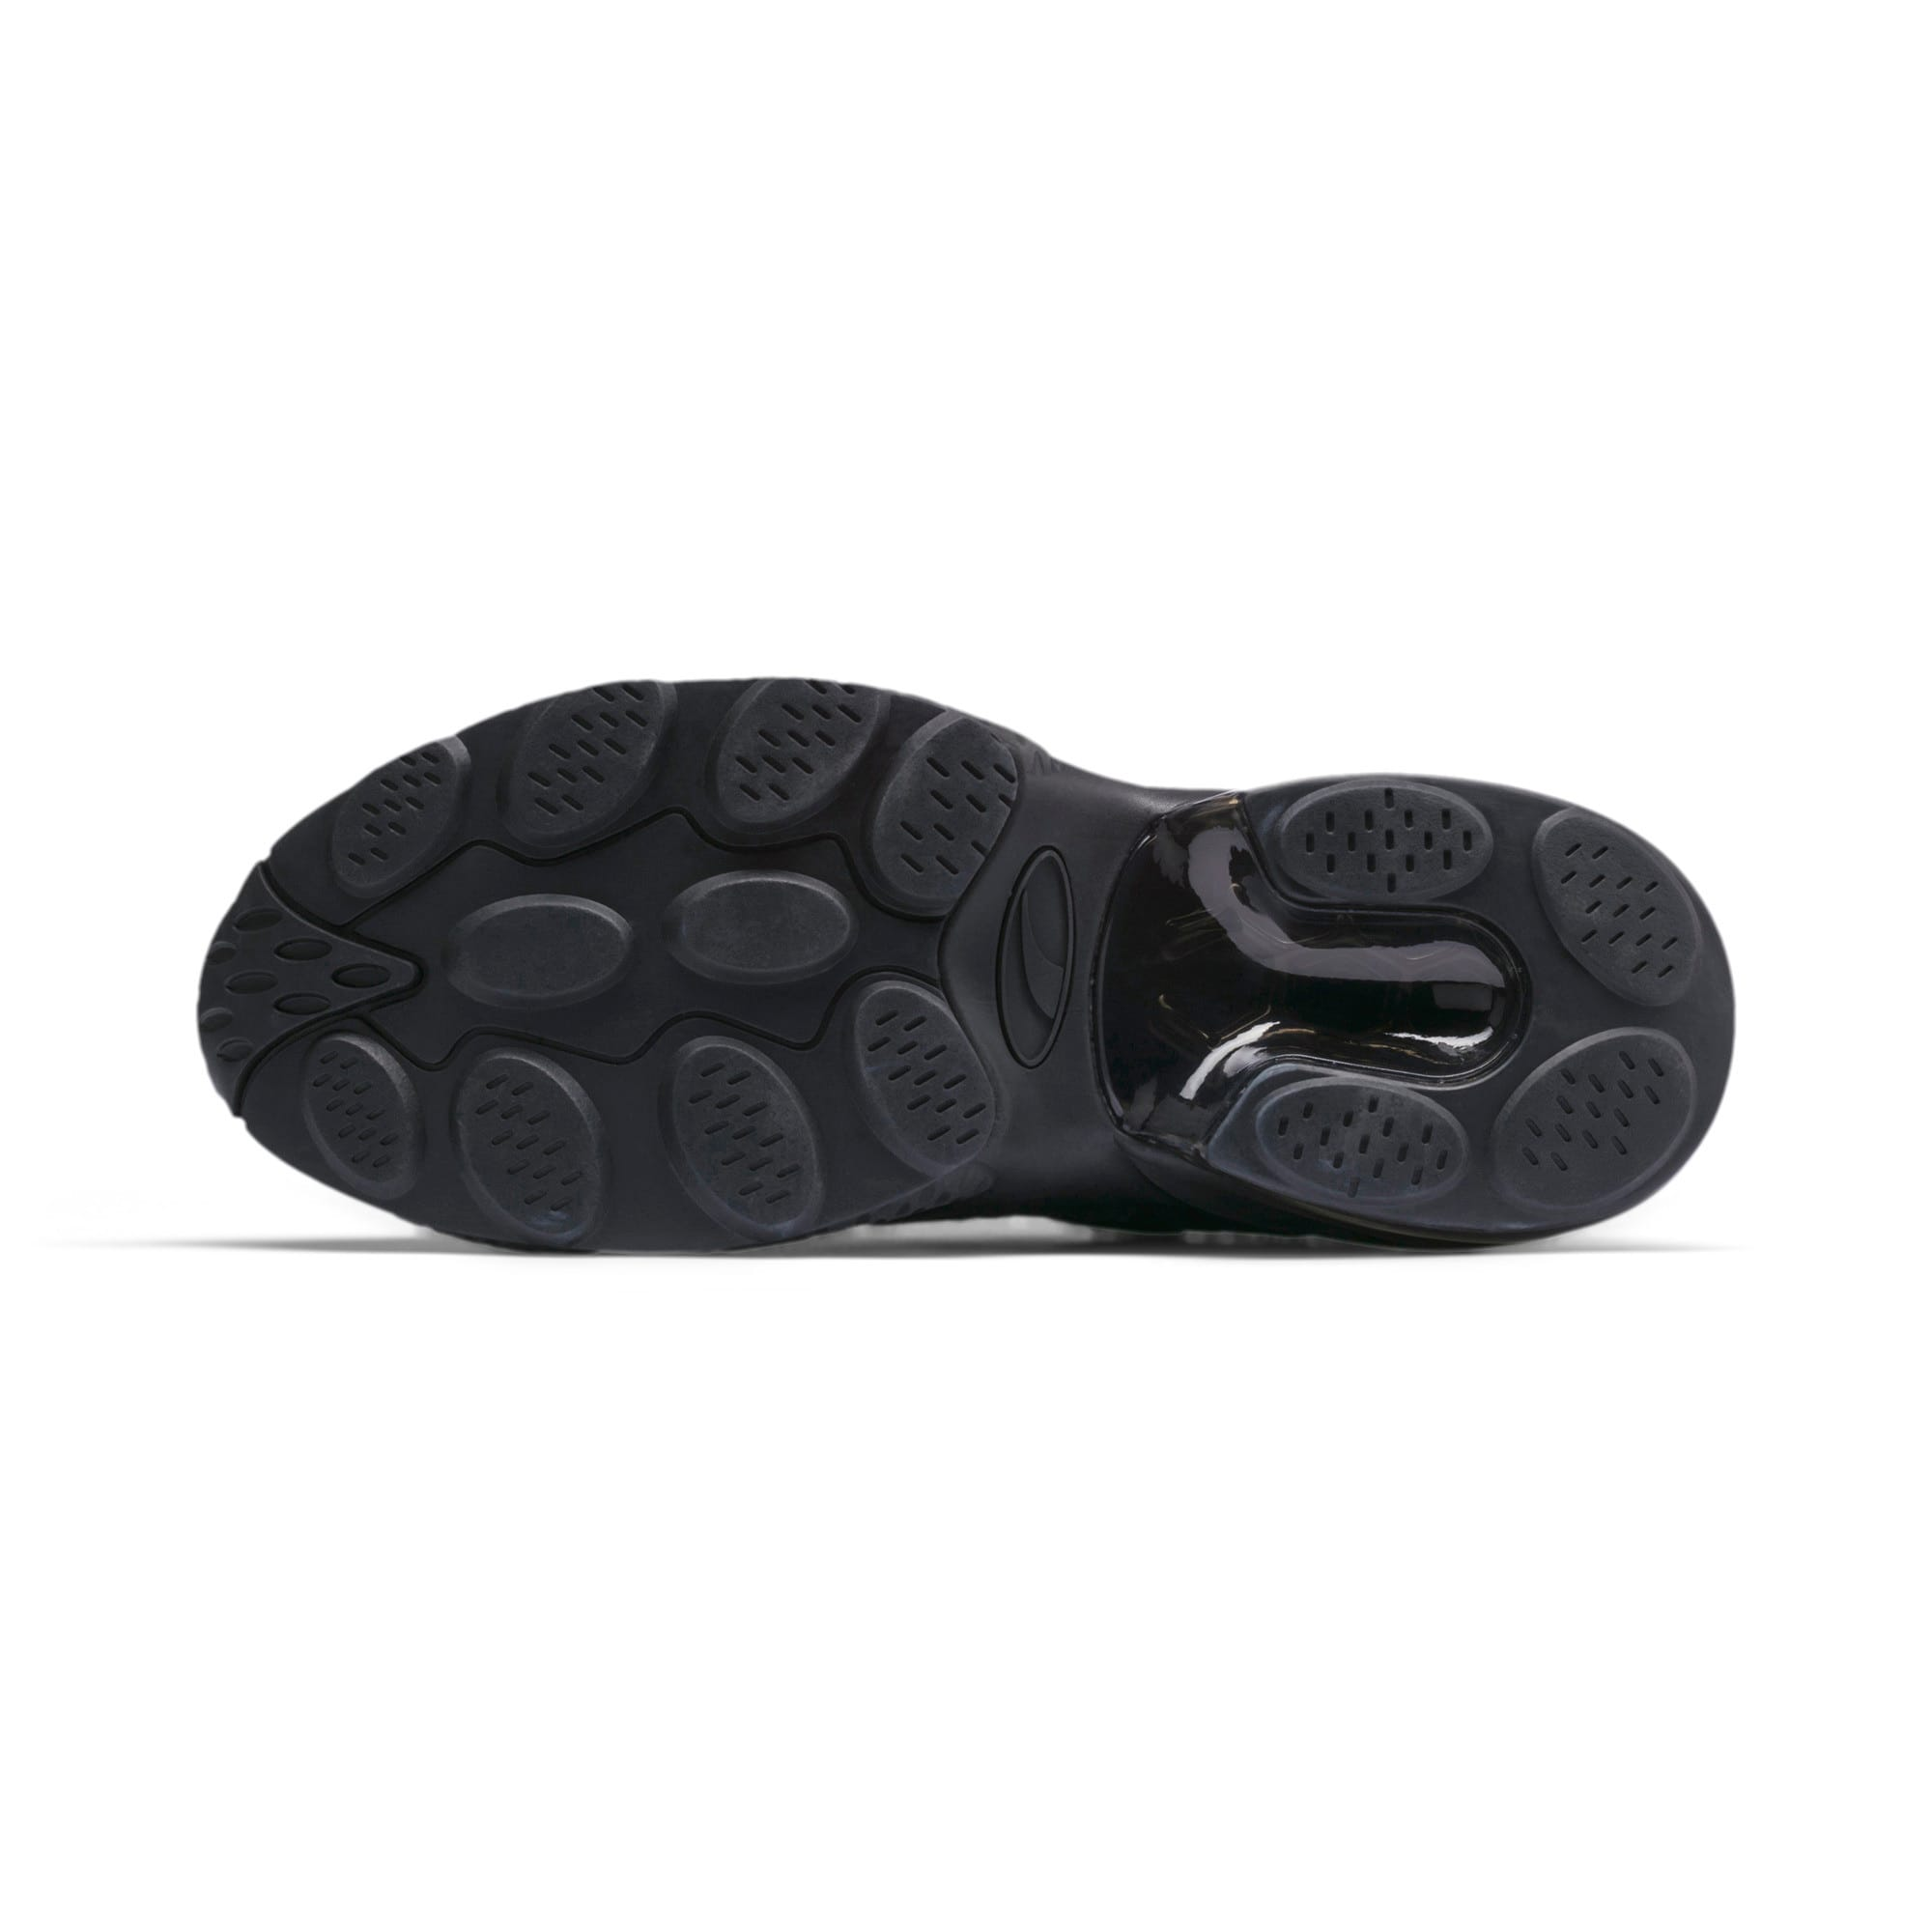 Thumbnail 4 of CELL Venom Blackout Sneakers, Puma Black-Puma Black, medium